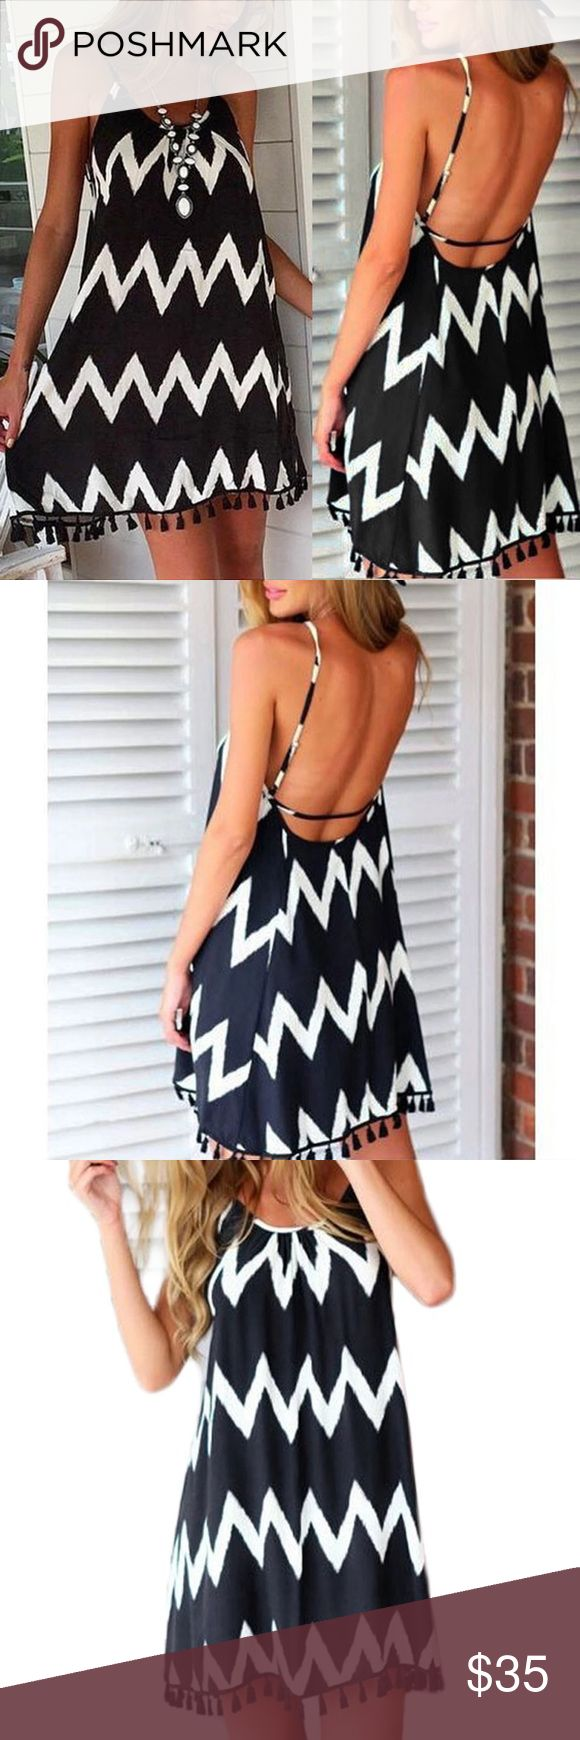 💙PREORDER💙 Black & white beach dress Casual and cute black and white geometric beach dress, loose fit for comfortable wearing.  ❗️PREORDER- if you don't want to preorder but would like to be notified of arrival, COMMENT below❗️  Material: Linen  Sizes available: SMALL, MEDIUM (see last image for sizing guide) *1cm = 0.39inches Dresses Backless